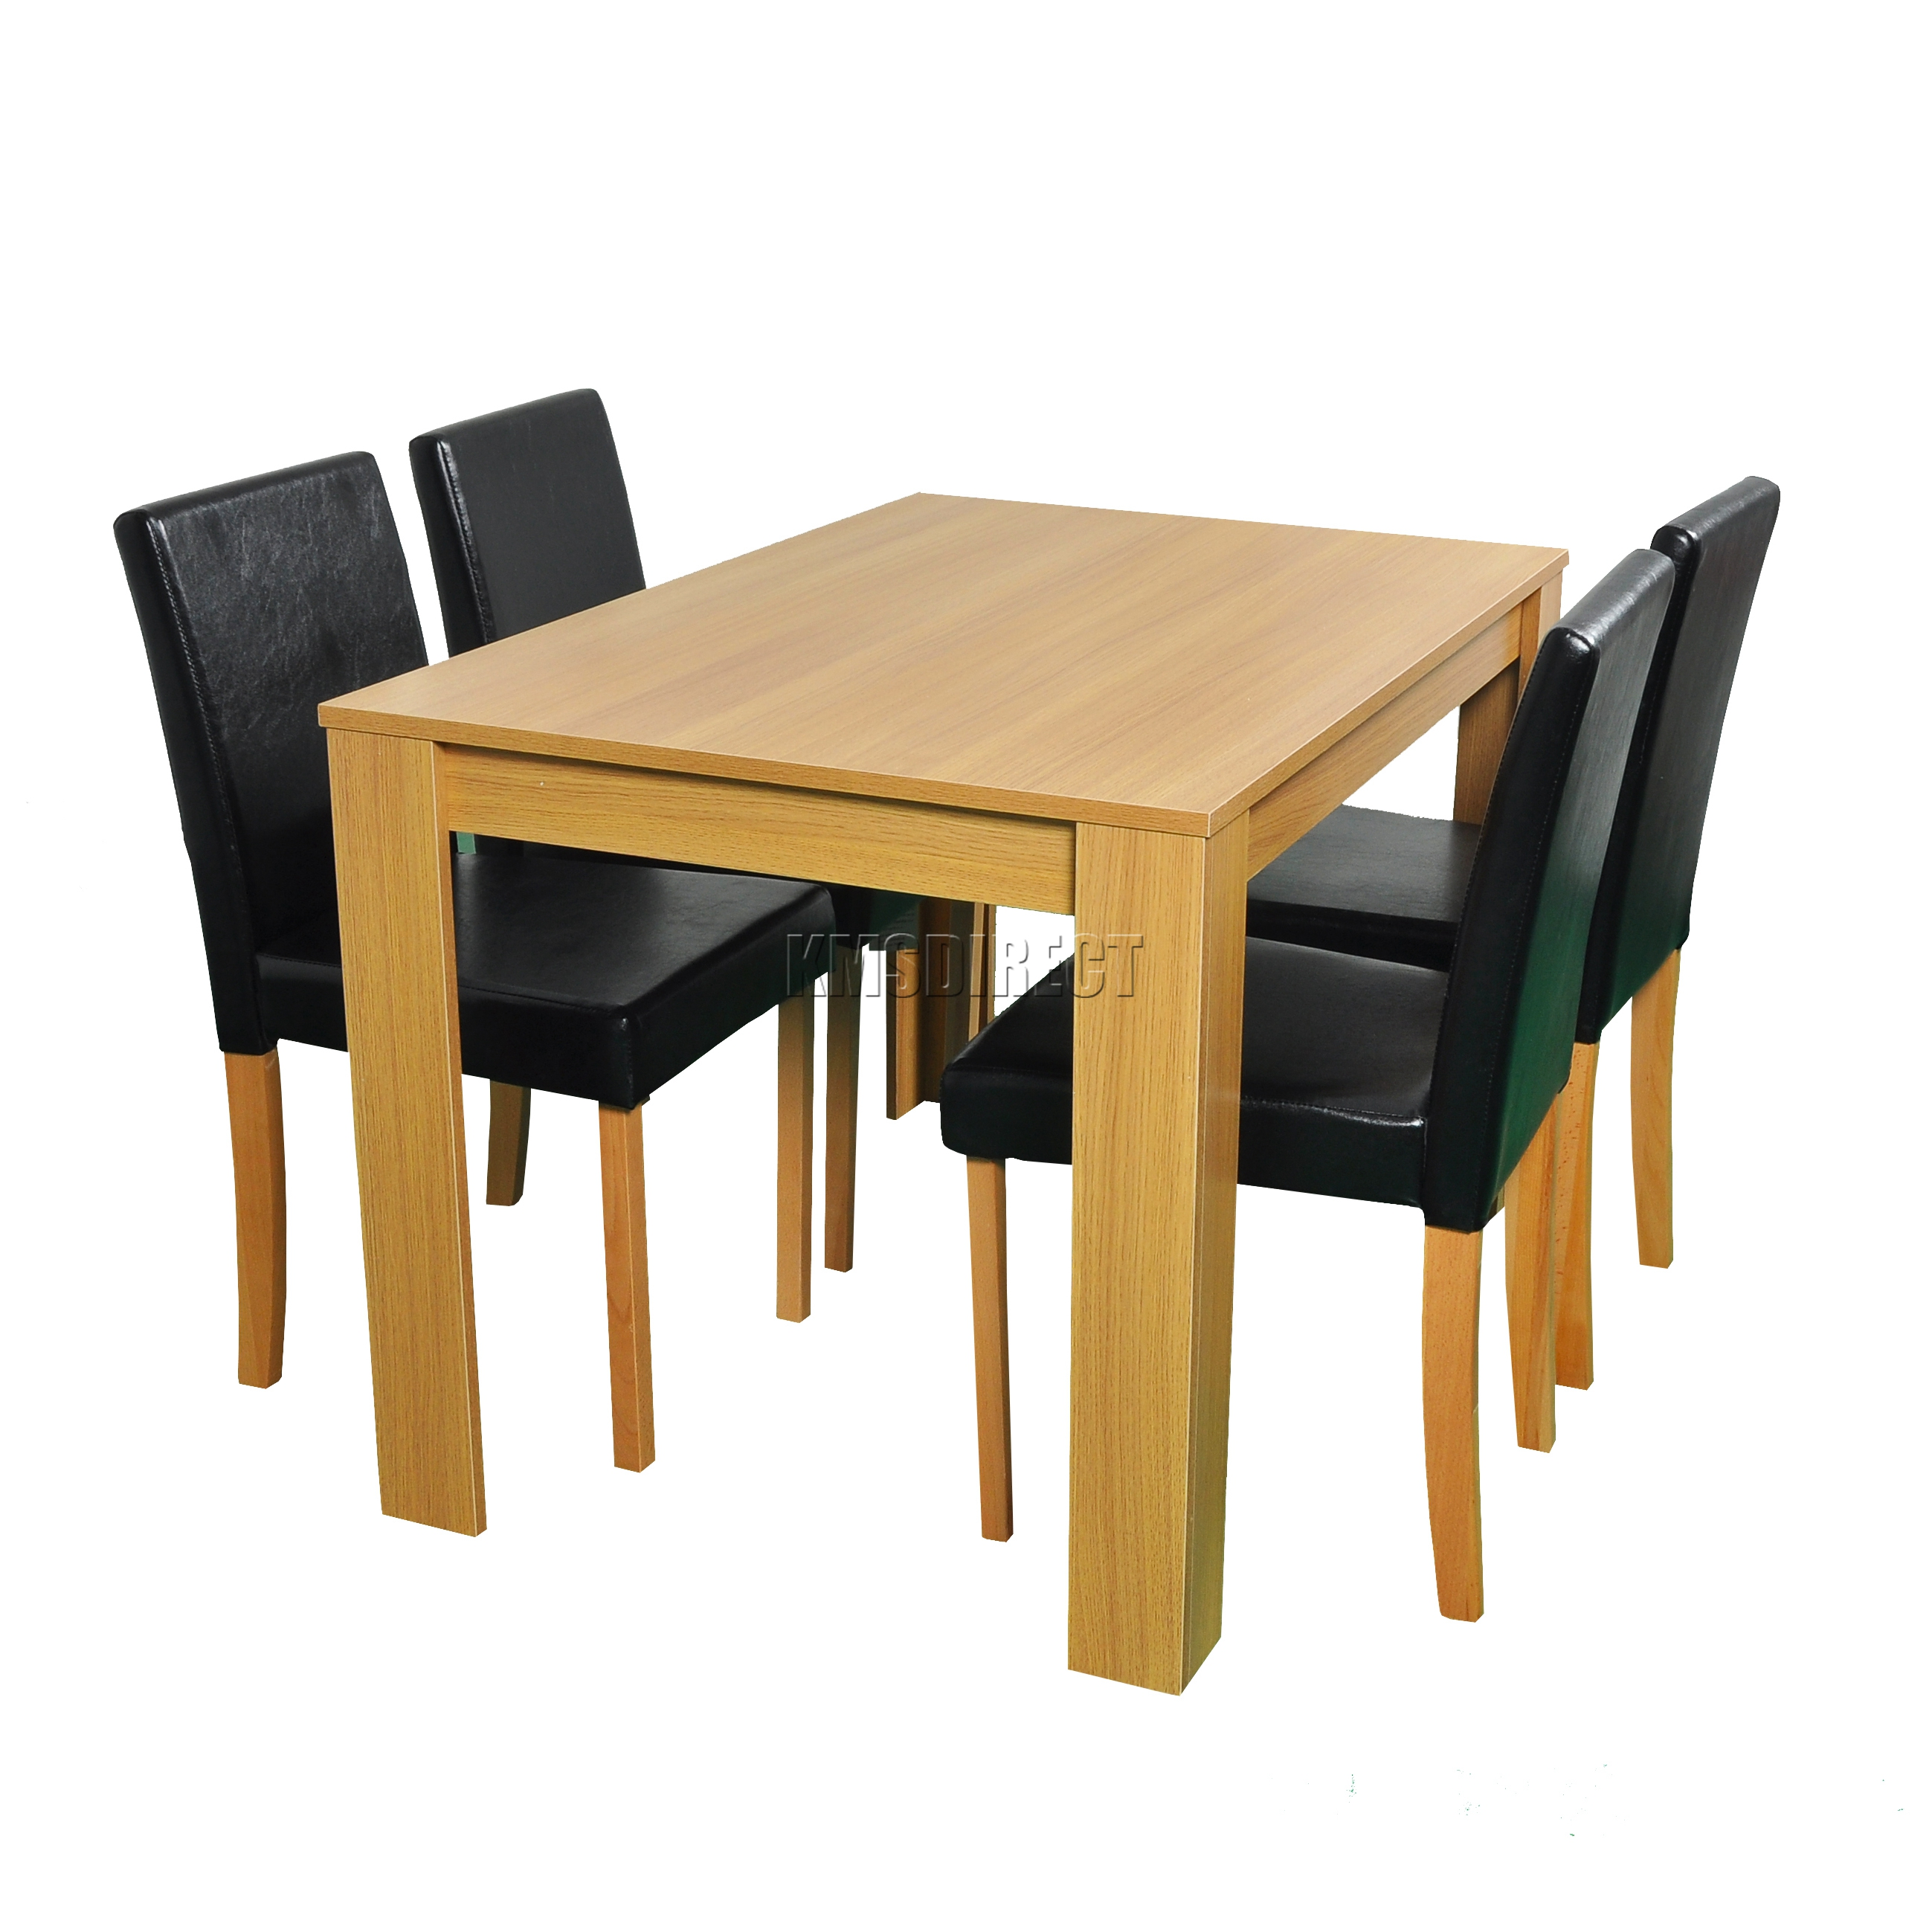 dining table and chair set uk white rocking wooden legs westwood 4 or 6 pu faux leather